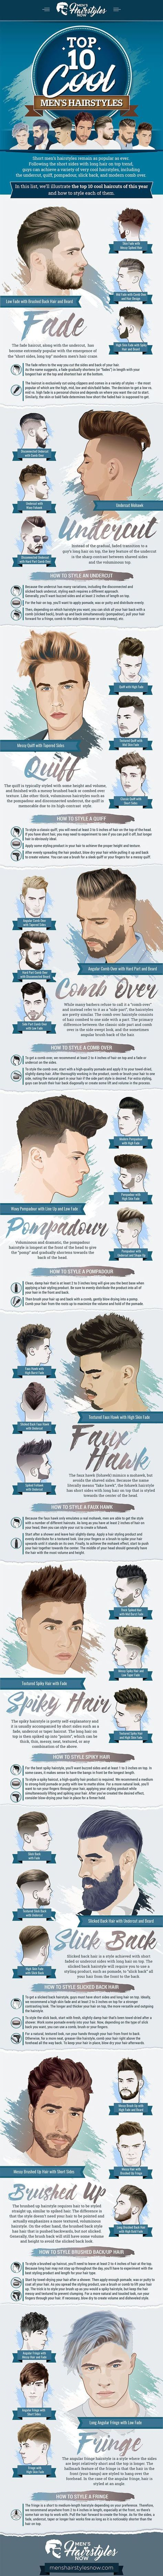 How often do men get haircuts cool hairstyles for men   haircut  haircuts and stylish hair